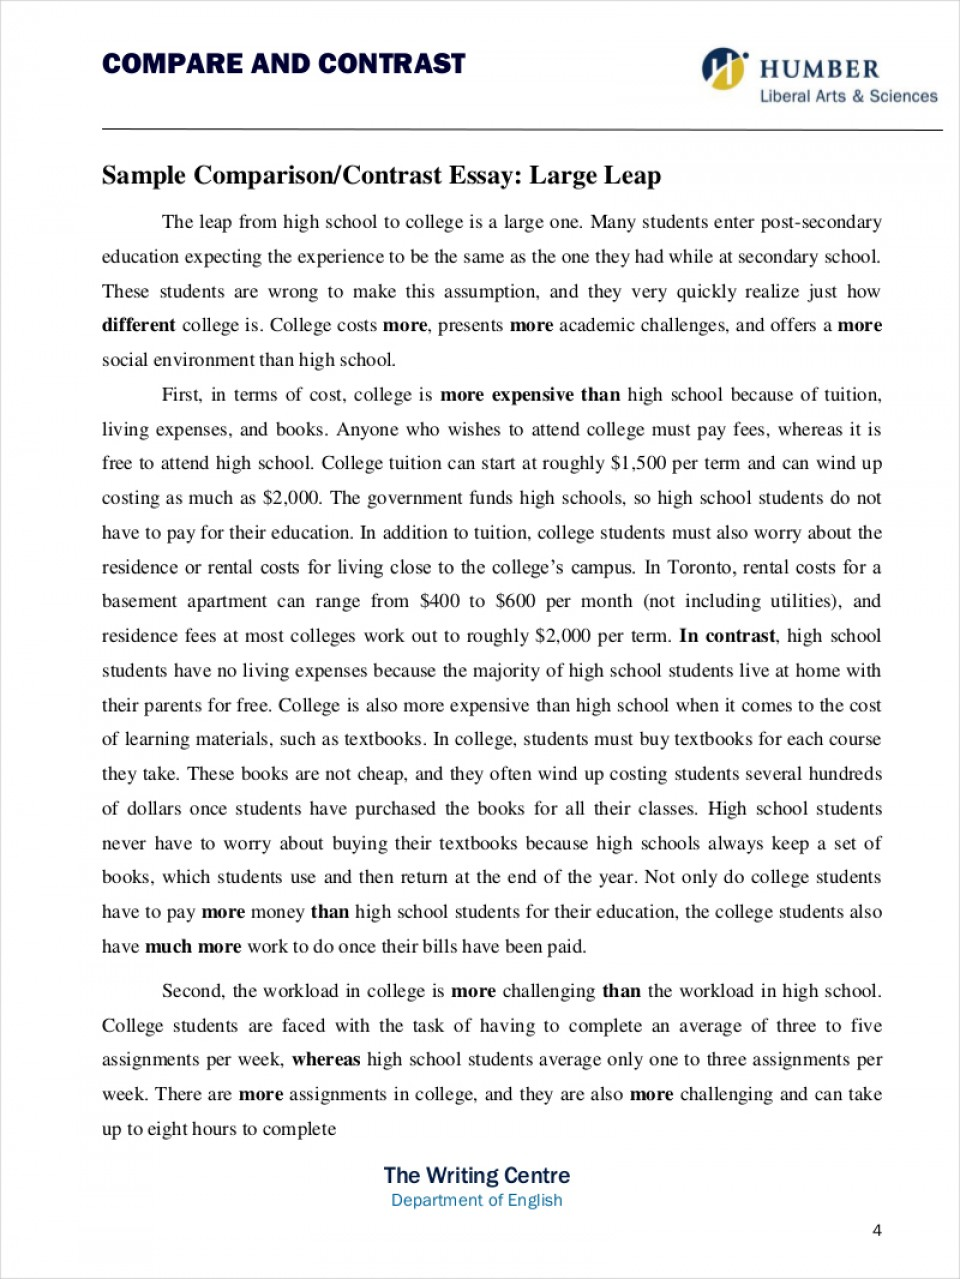 006 Compare And Contrast Essay Examples Comparative Samples Free Pdf Format Download Throughout Comparison Thesis Coles Thecolossus Co Within Ex 5th Grade 4th 6th 3rd Magnificent Topics 960